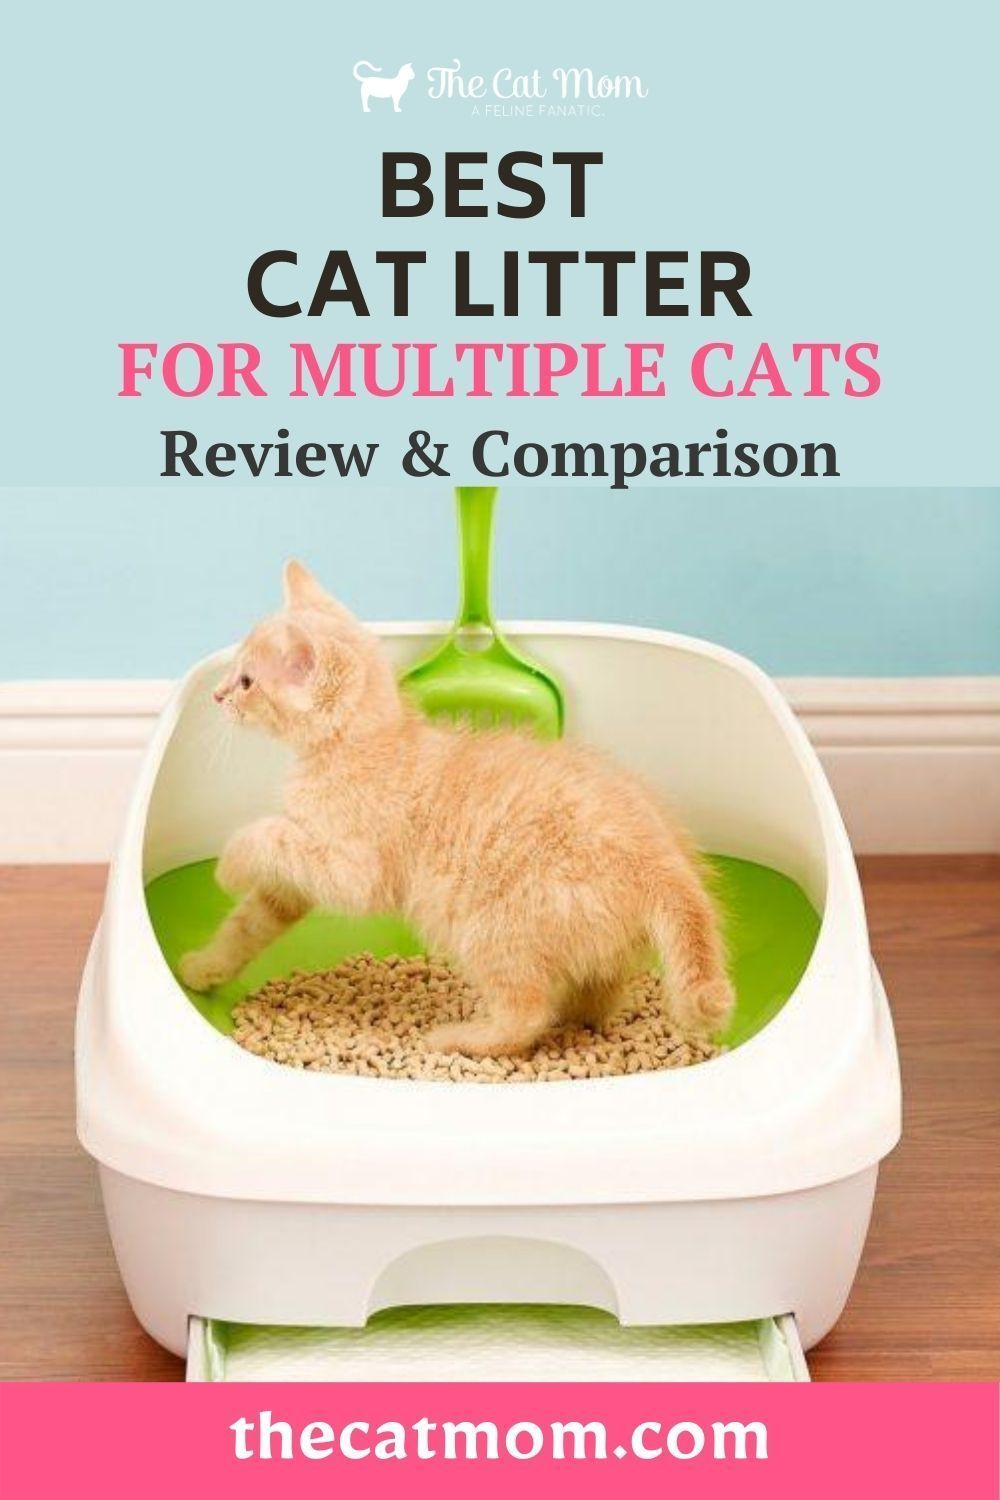 The Best Cat Litter for Multiple Cats Review & Comparison